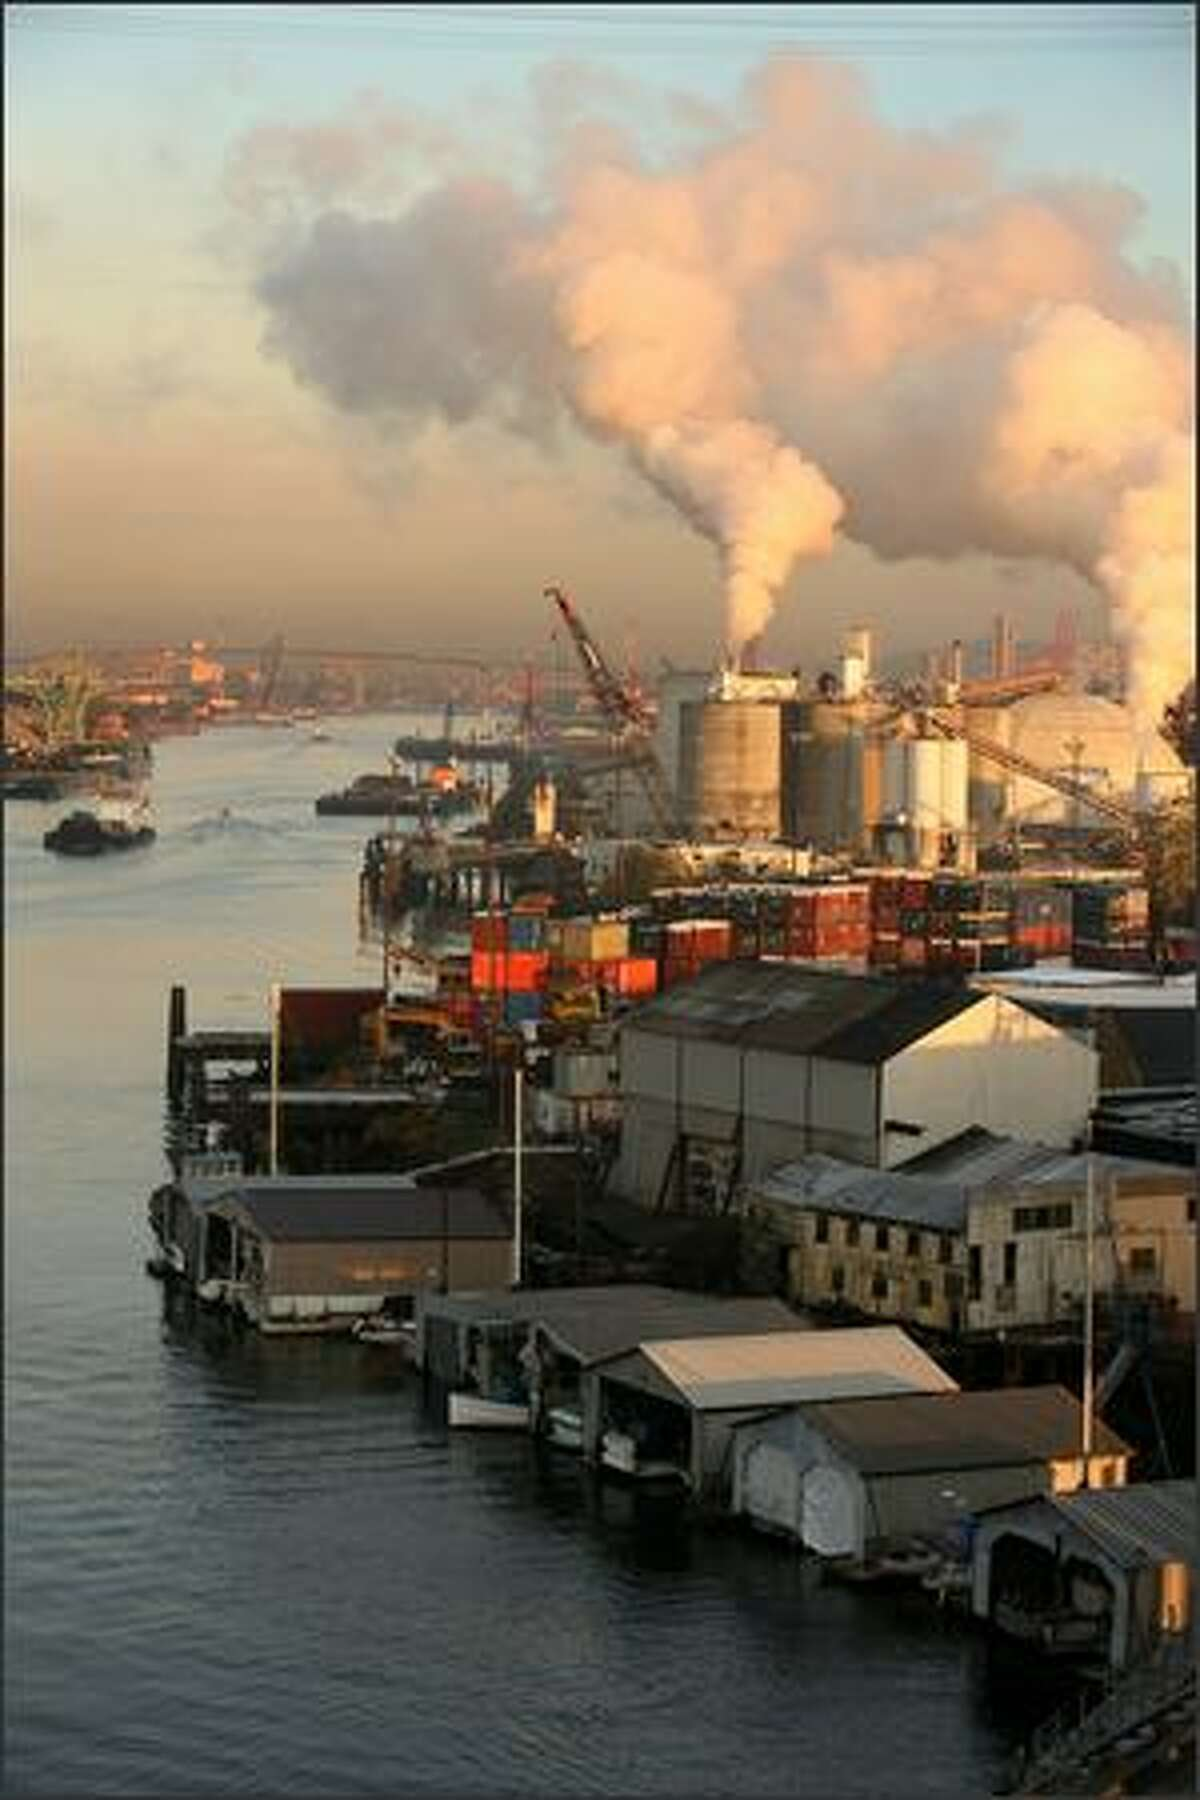 Over the past 100 years, dredging, the creation of Harbor Island and discharges of human waste and industrial contaminants have dramatically affected the Duwamish. Moreover, cleanup officials today don't even know the source of a lot of the pollution.